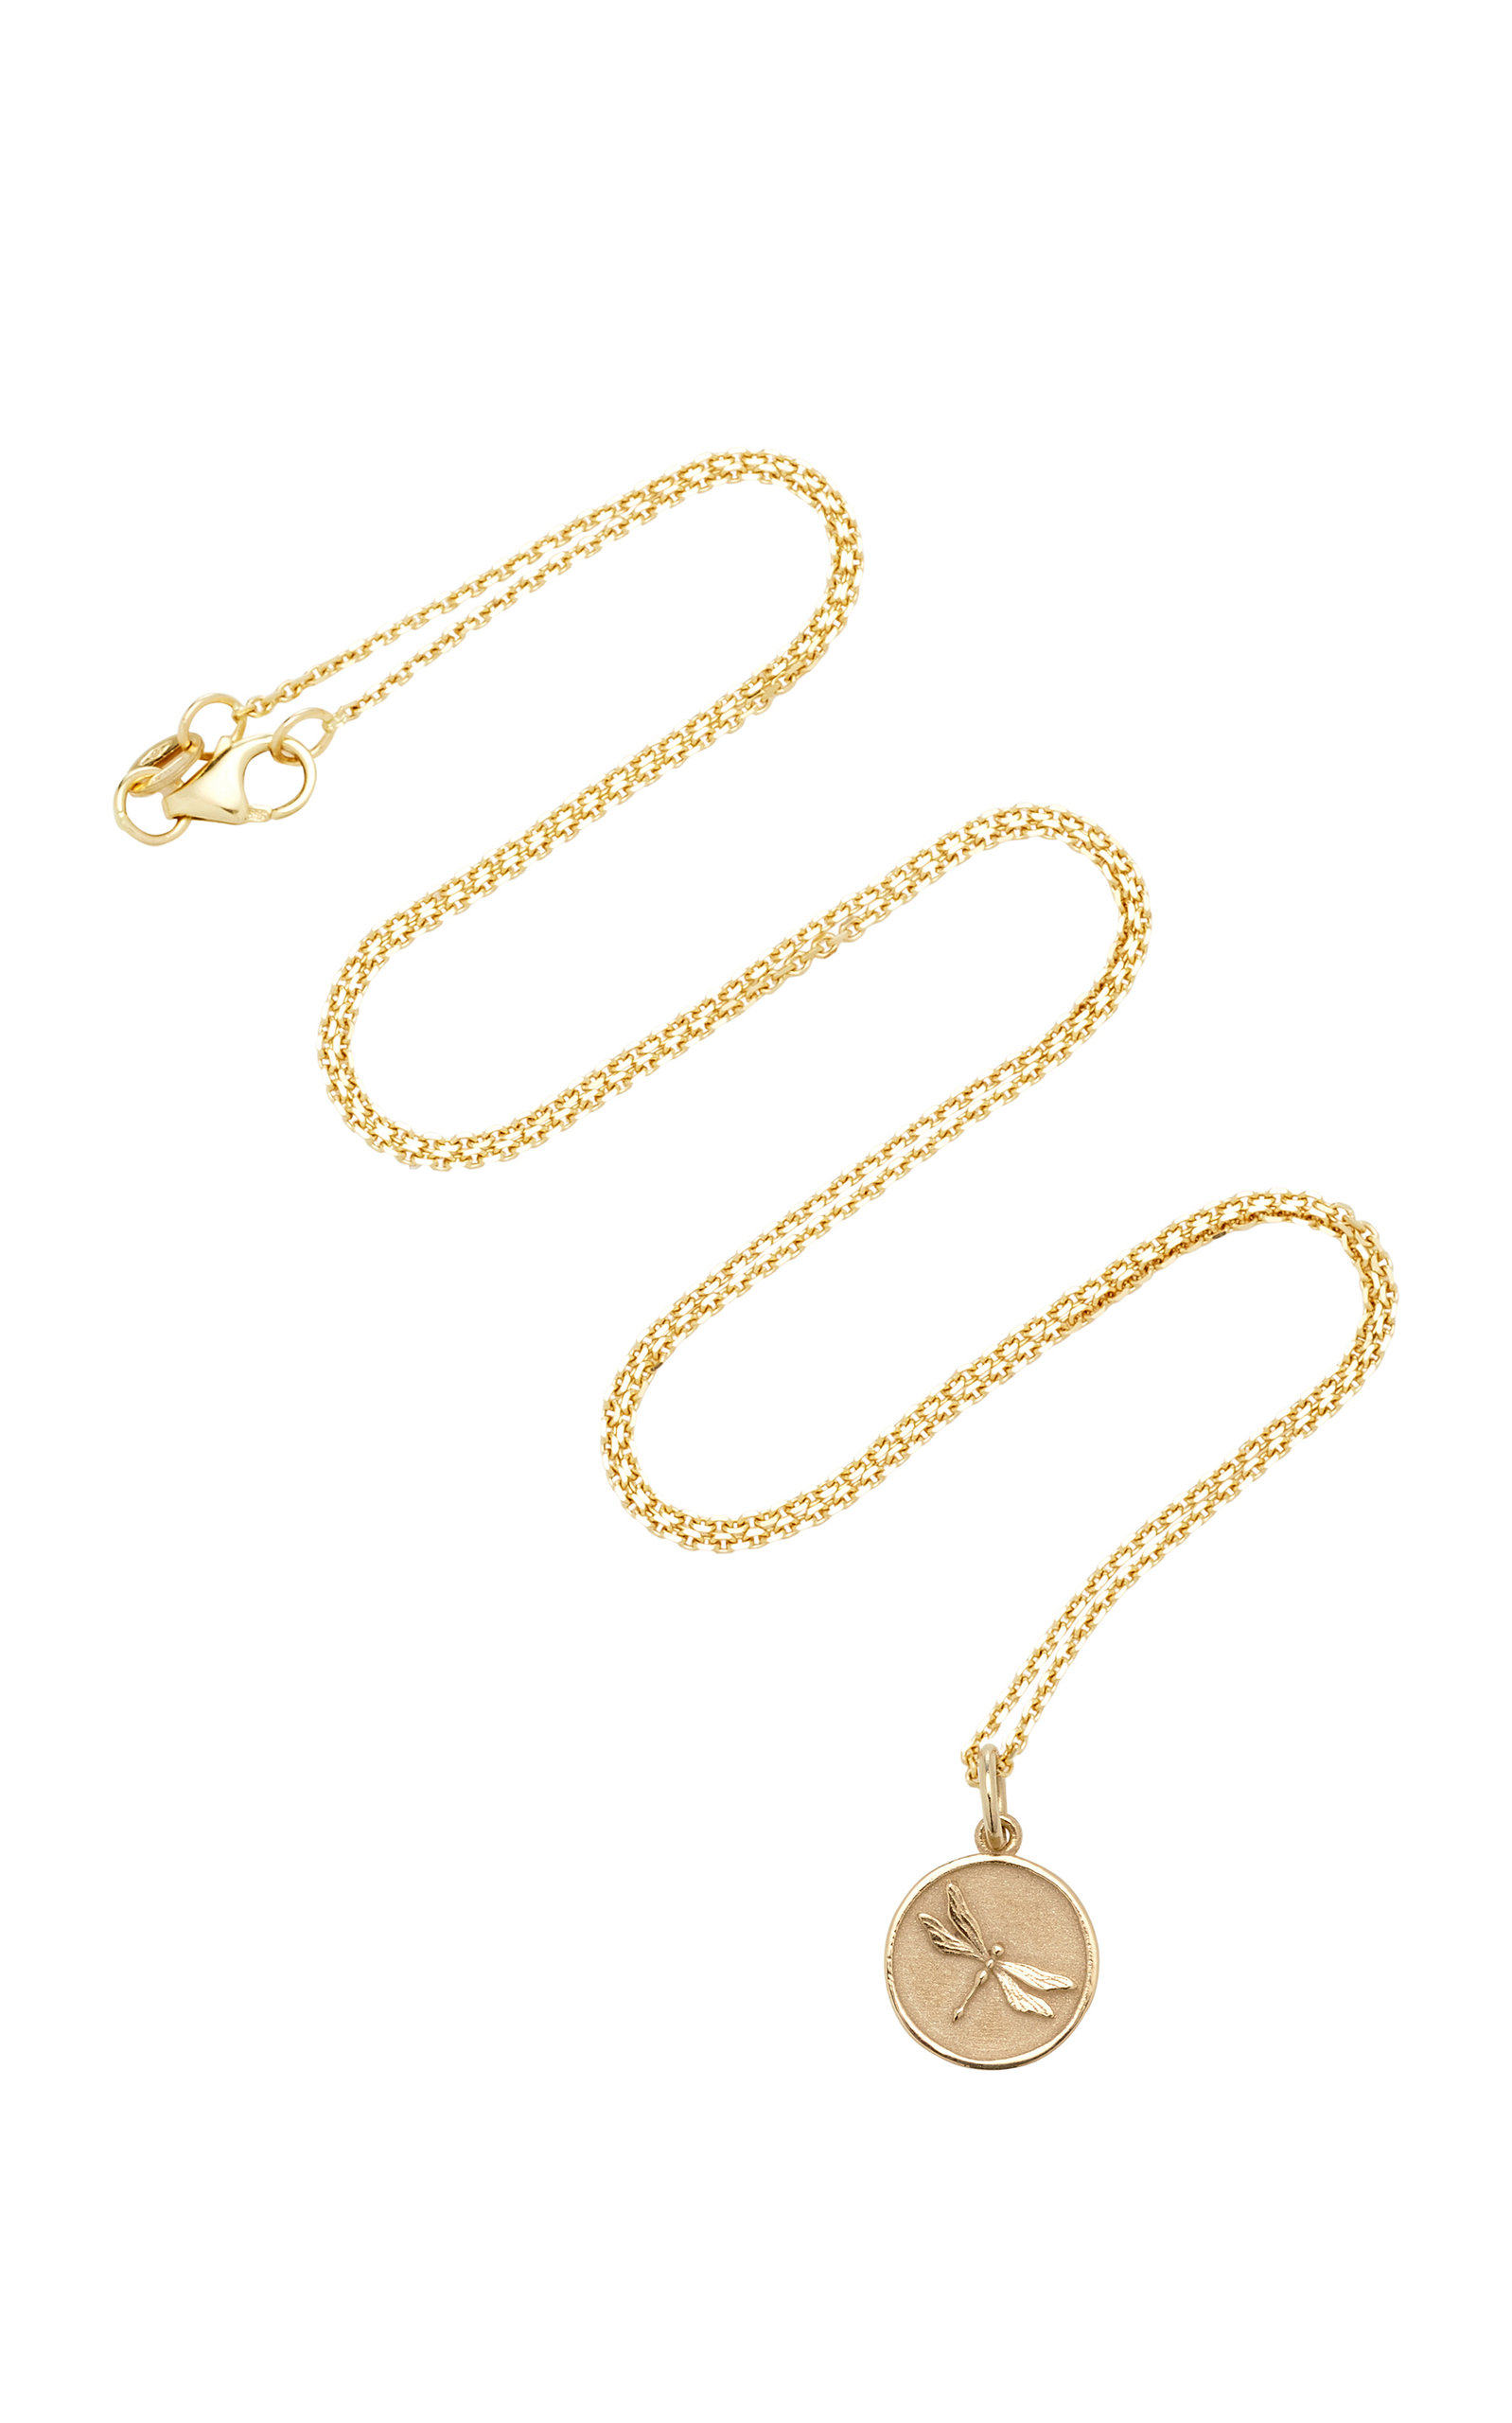 WITH LOVE DARLING Dragonfly Totem 14K Gold Necklace